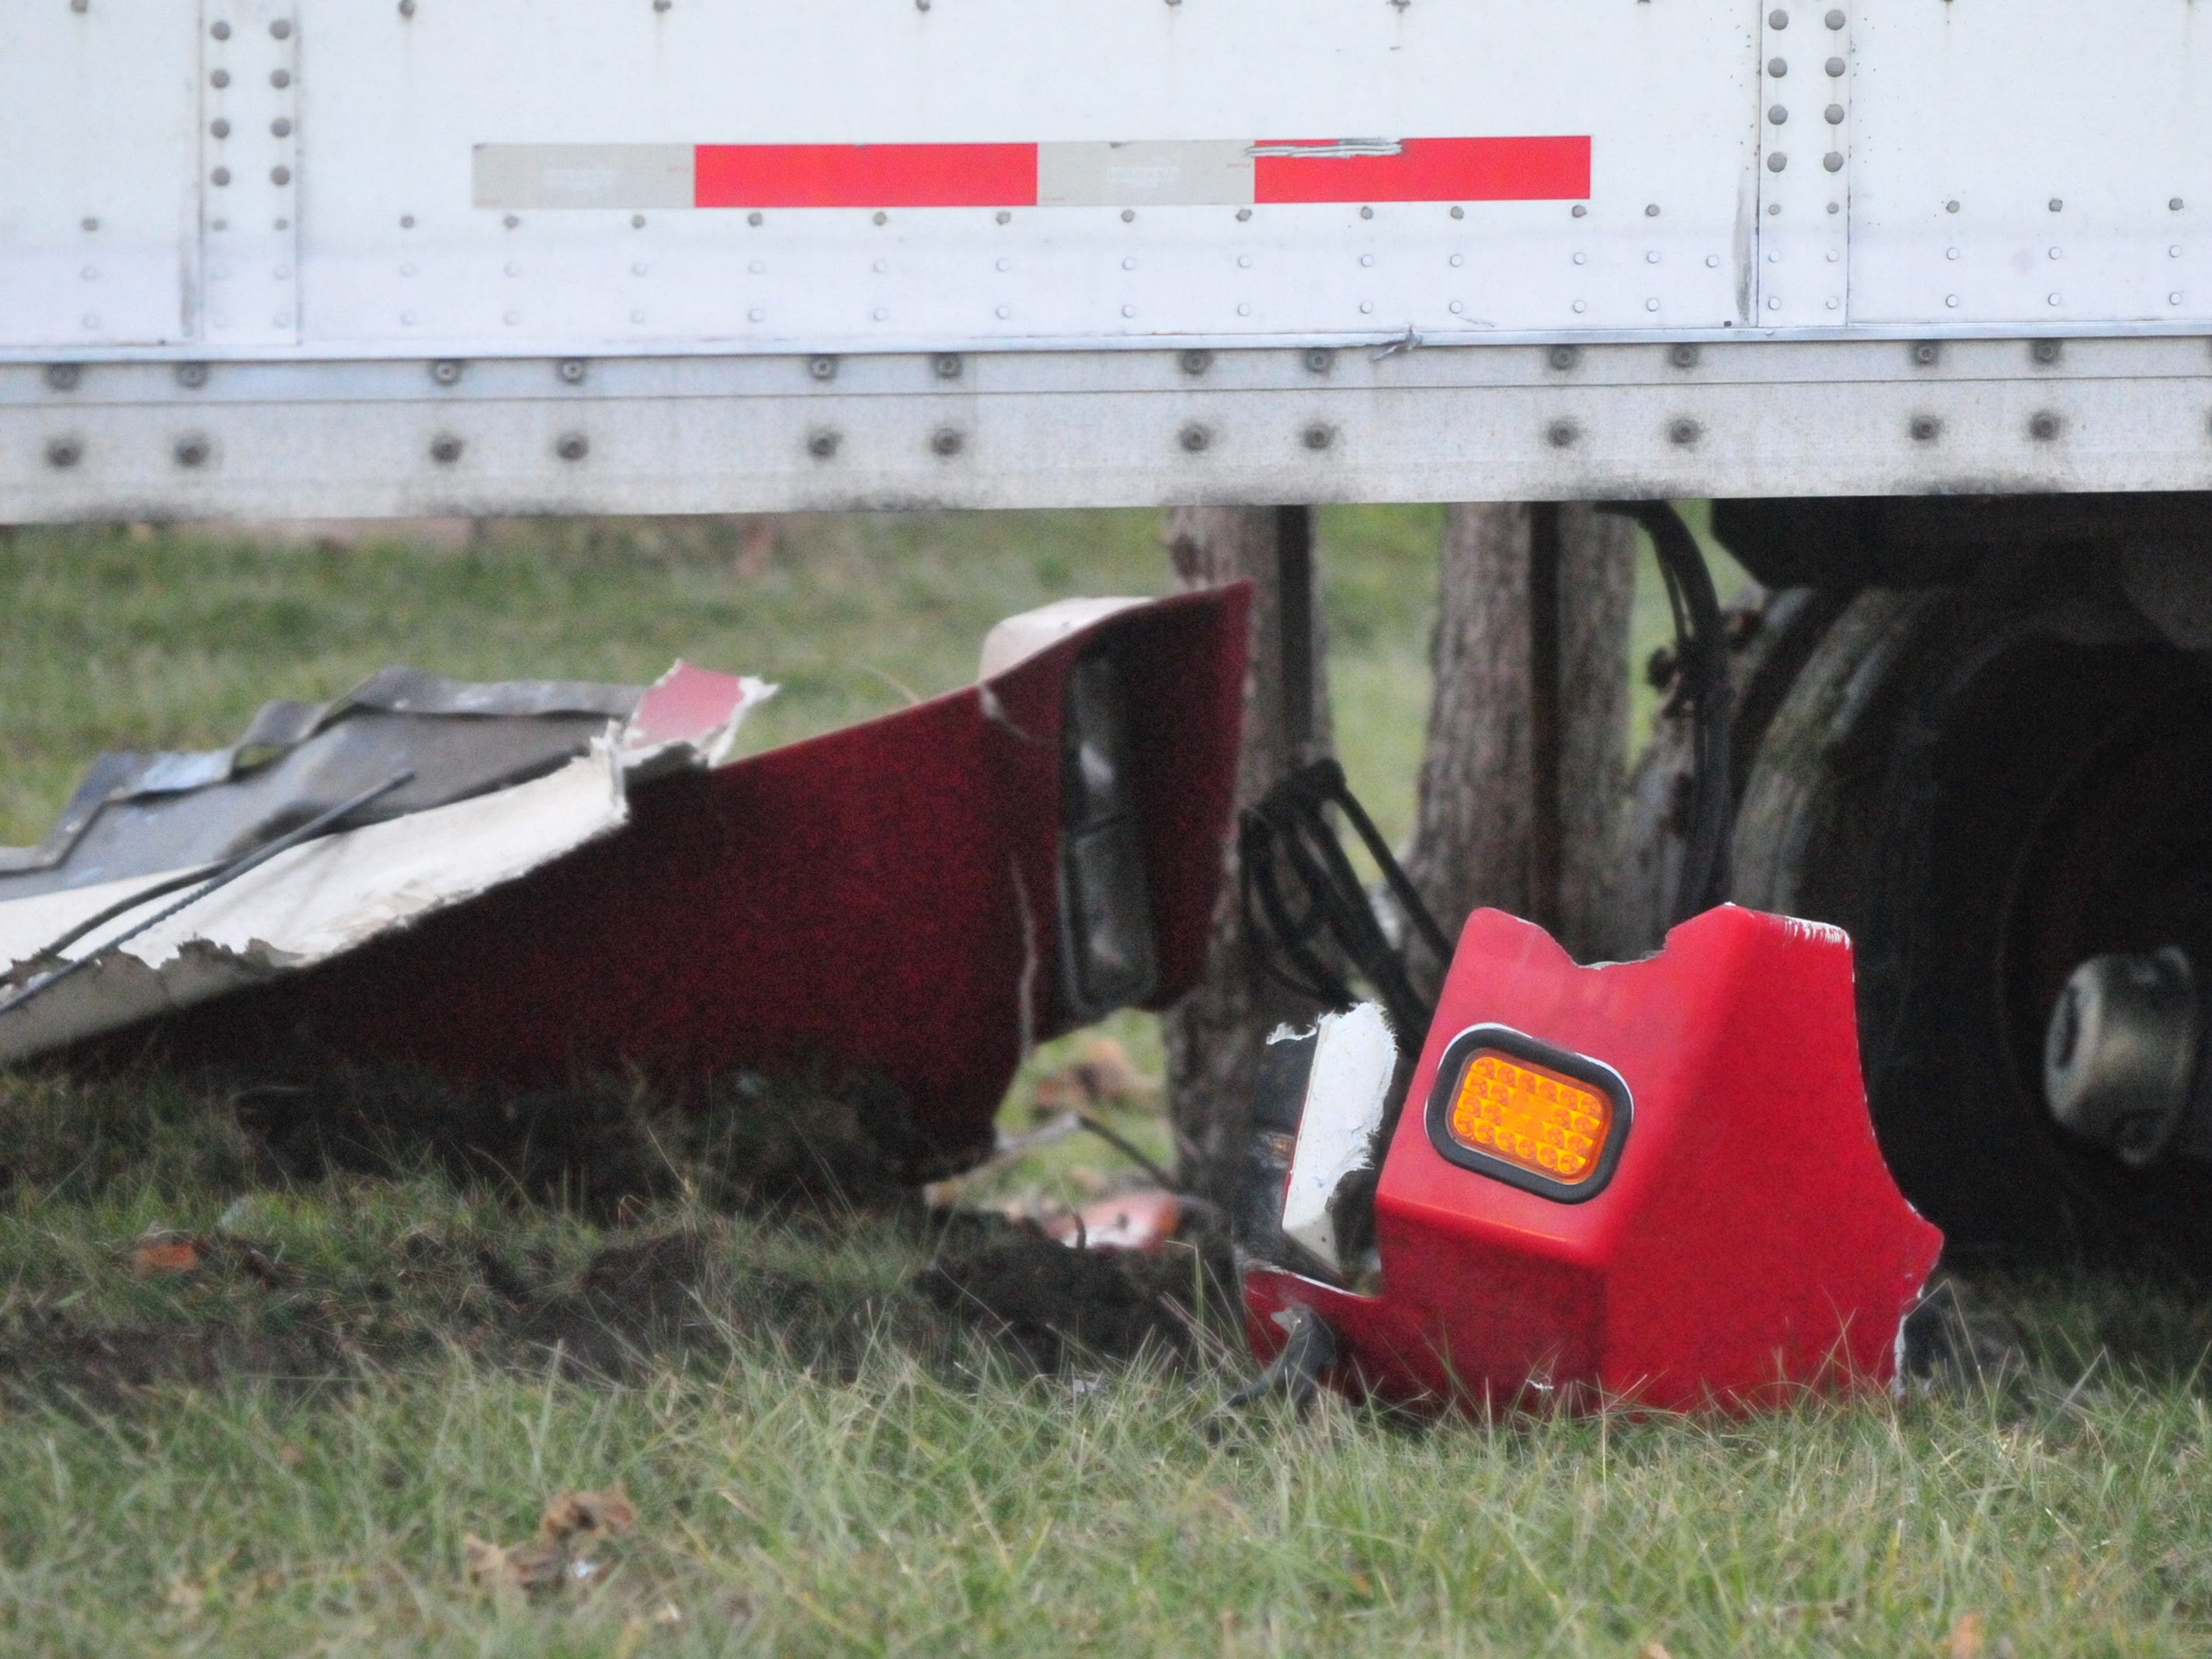 Parts of a damaged semi tractor-trailer sit in the grass adjacent to U.S. 35 after Monday afternoon's three-vehicle accident.